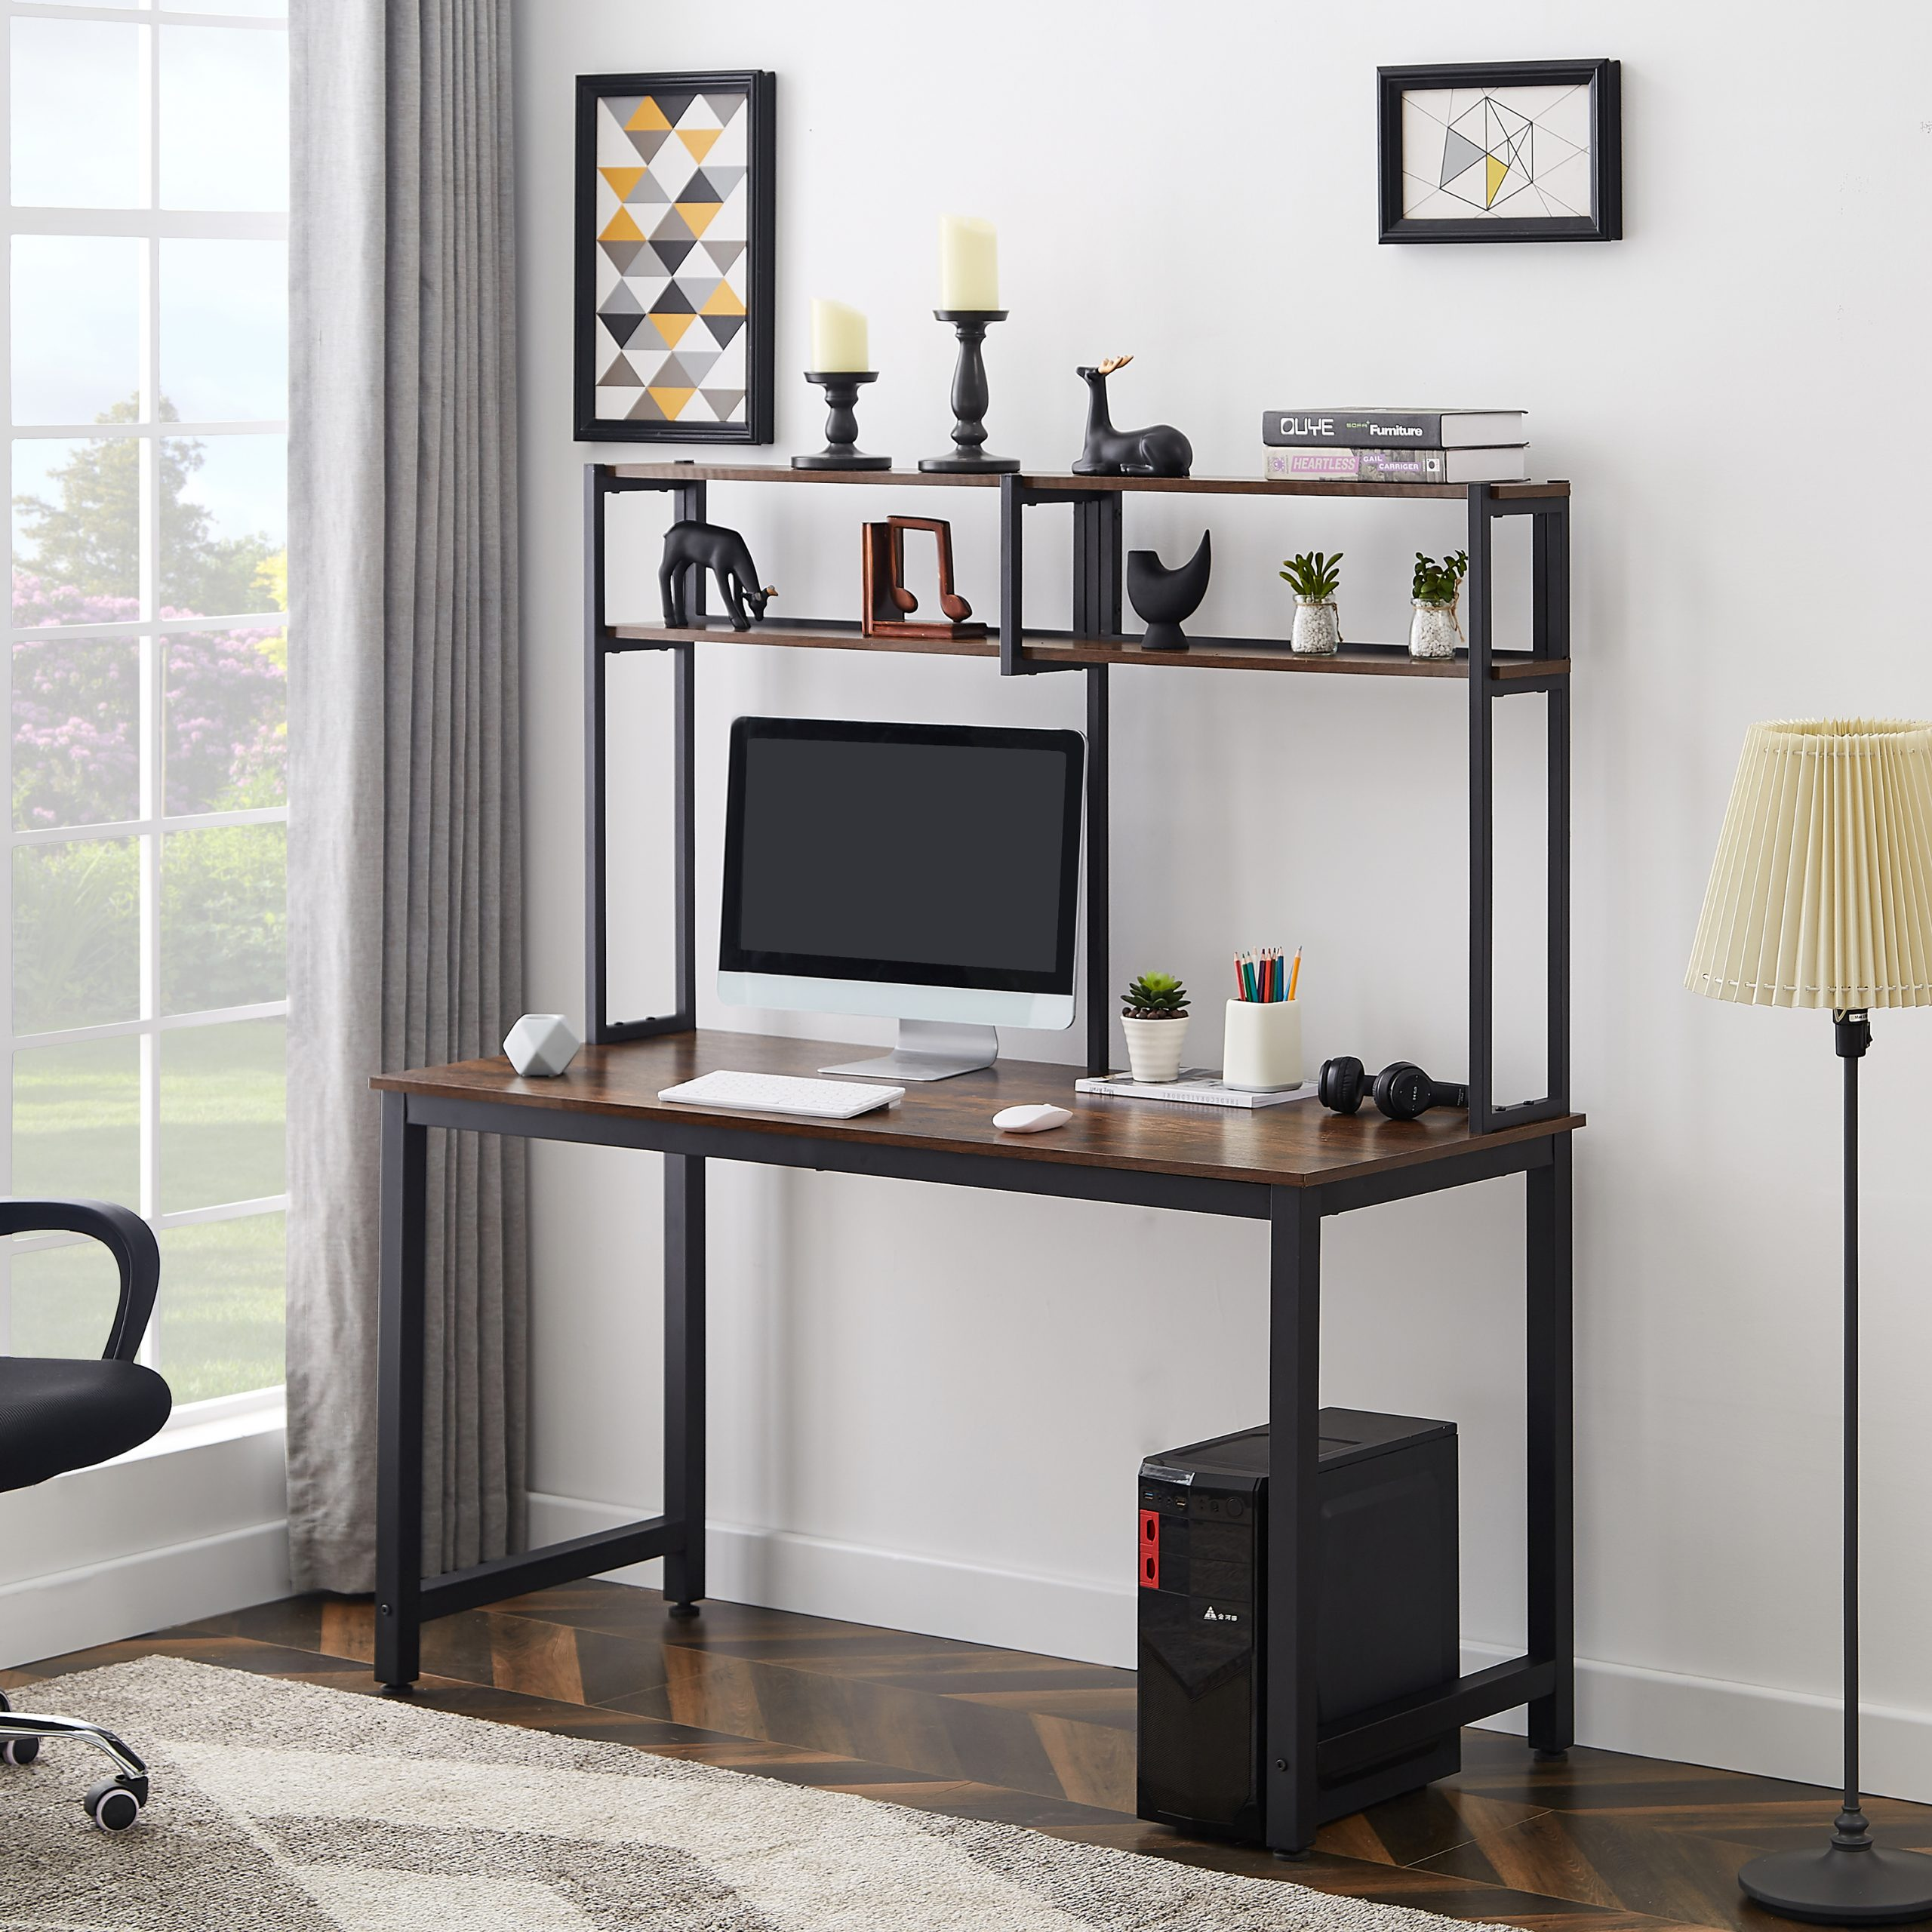 52 Inches Computer Desk With Hutch And Shelves